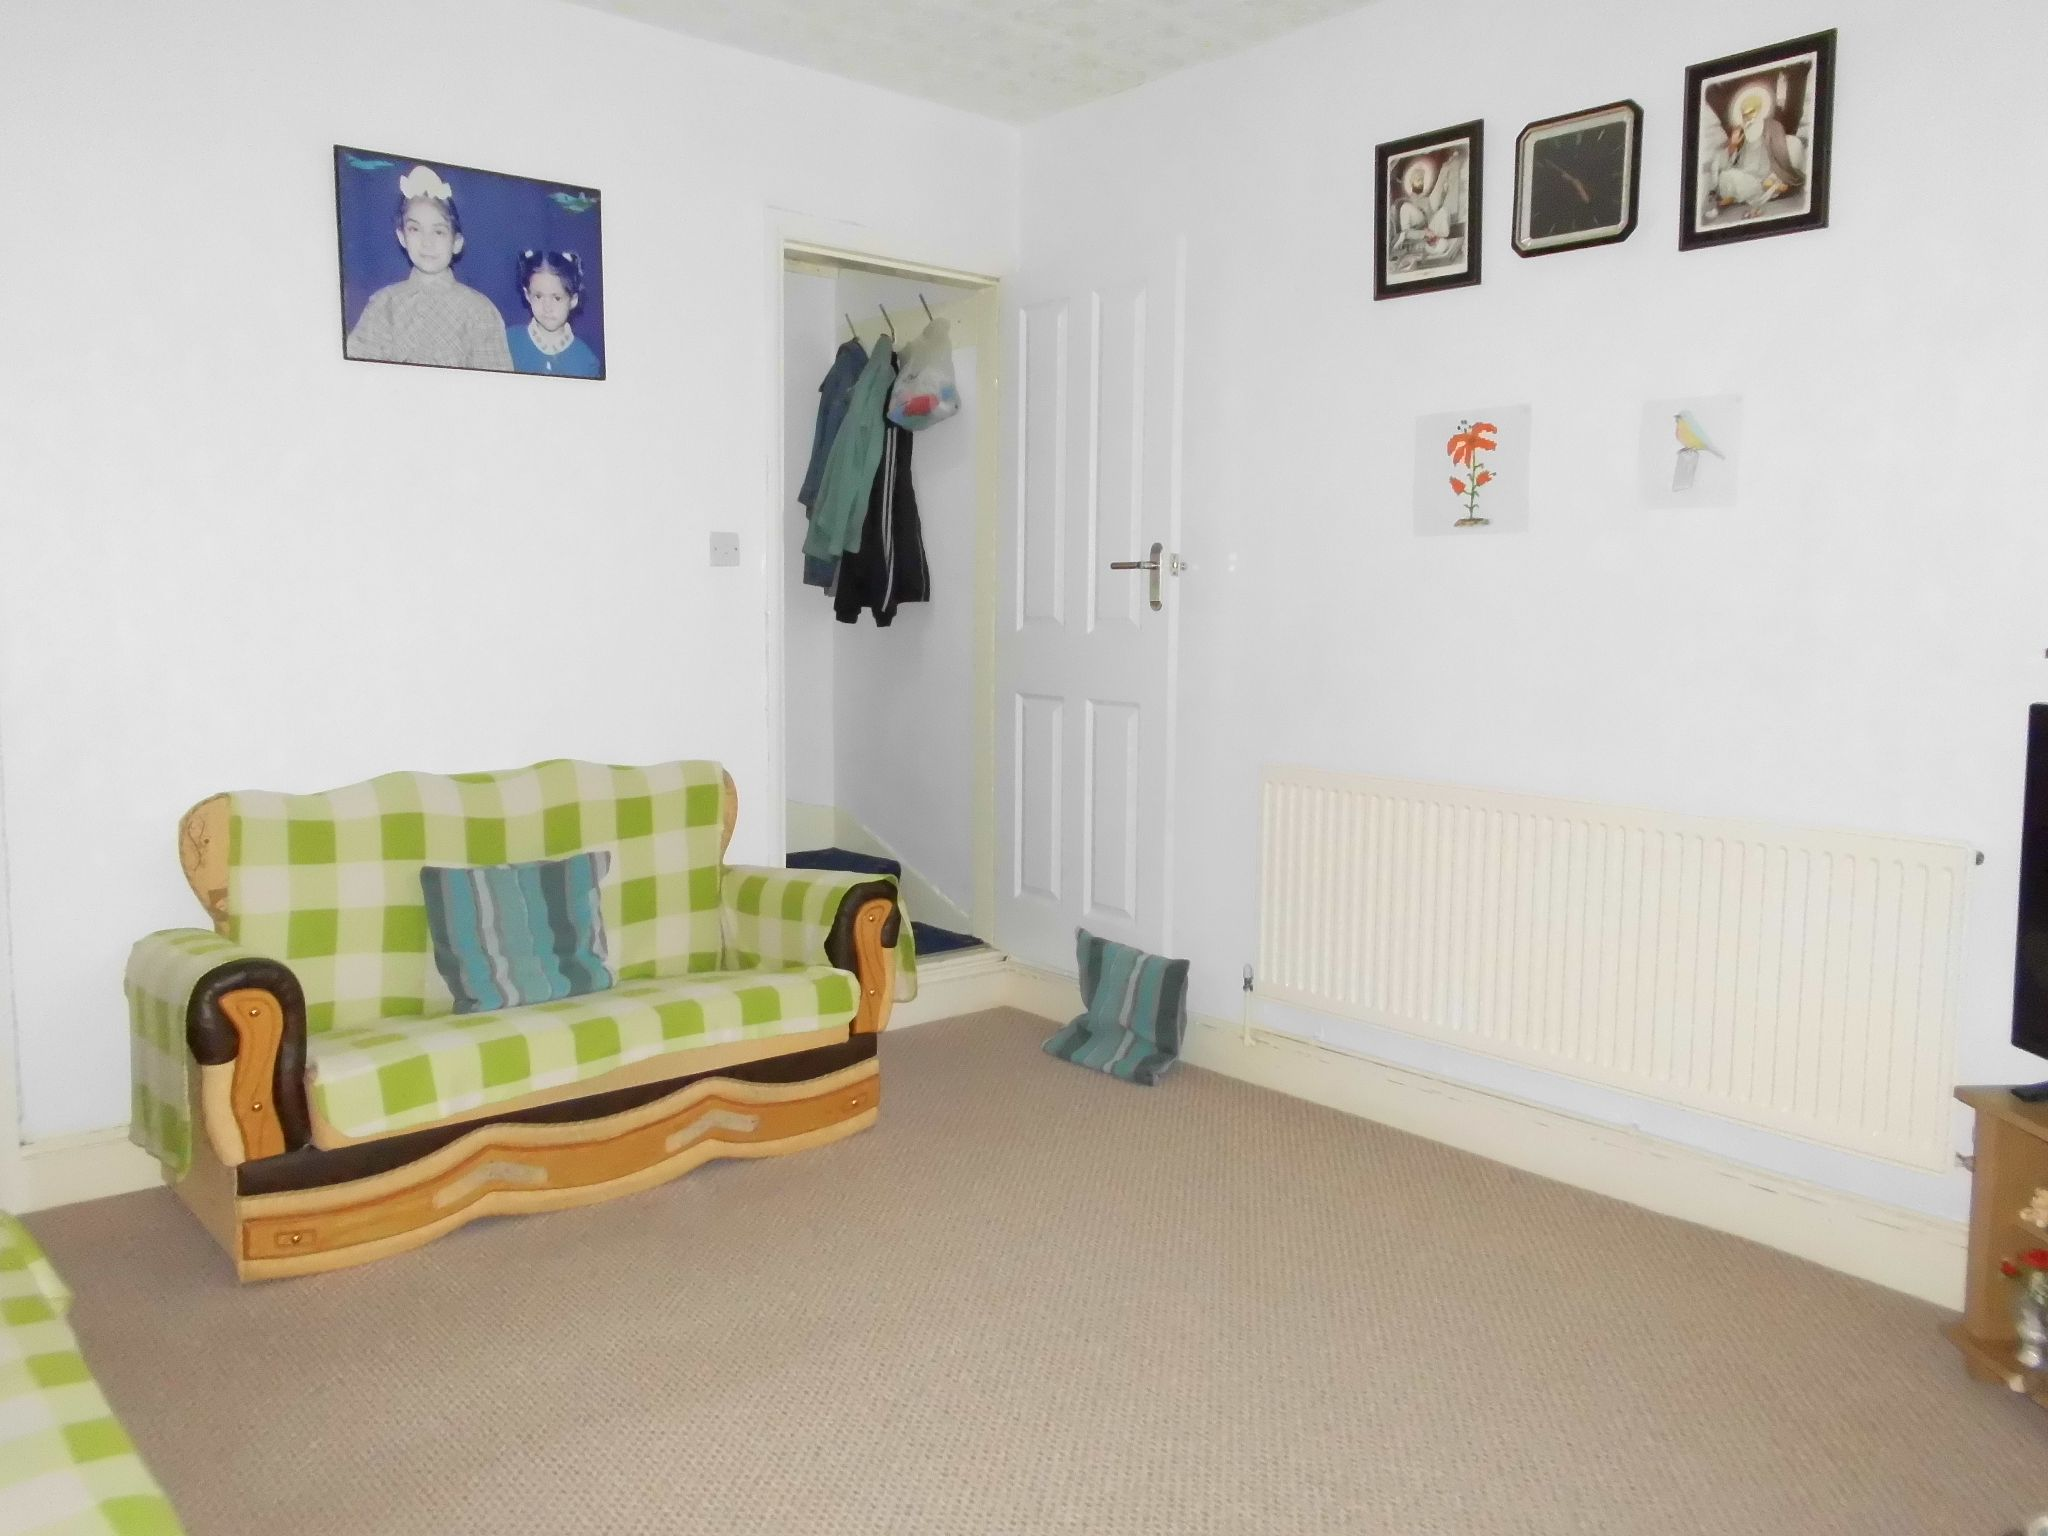 3 bedroom mid terraced house SSTC in Leicester - Photograph 5.